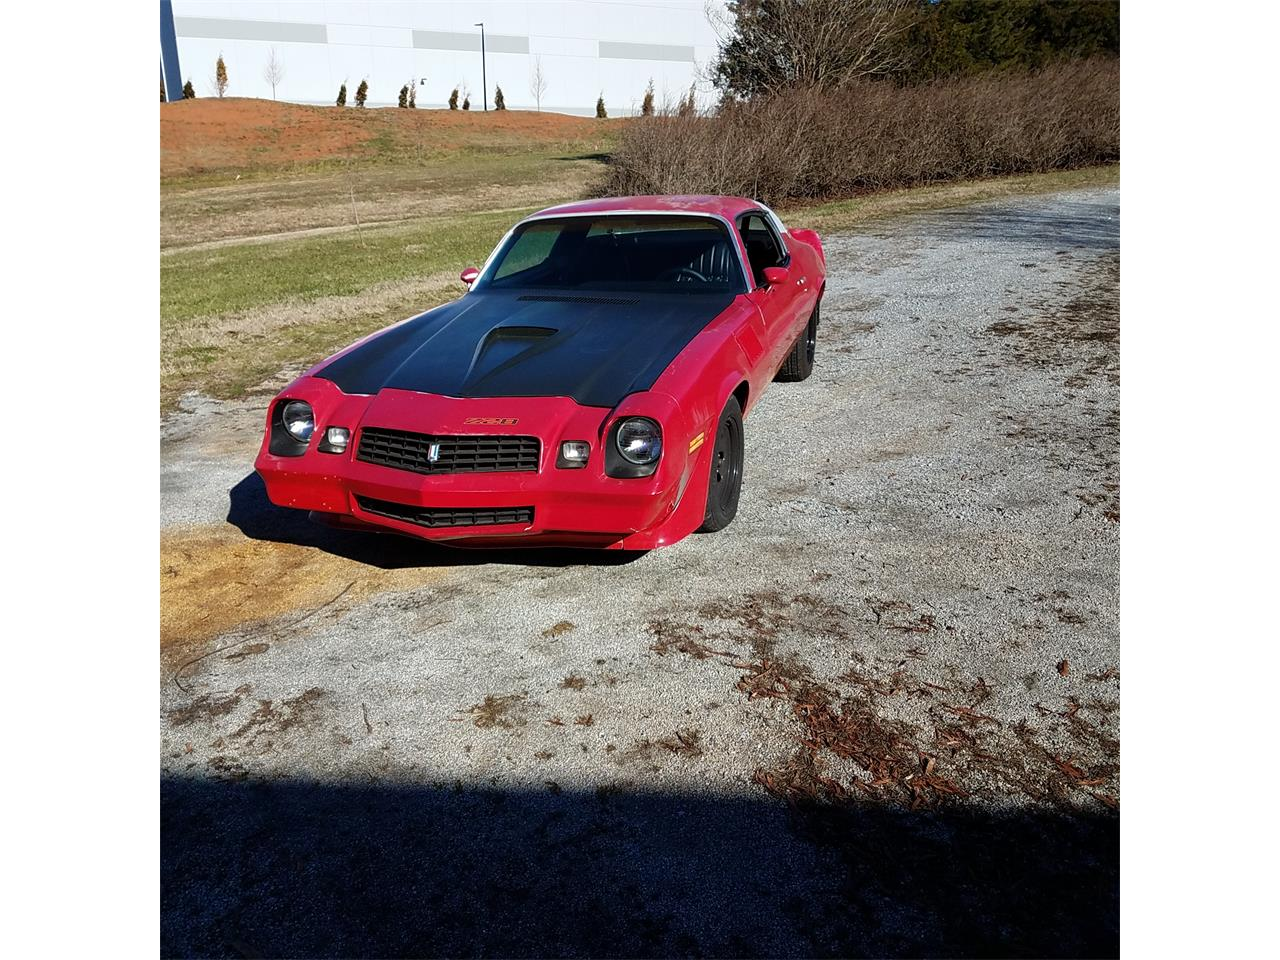 1979 Chevrolet Camaro Z28 (CC-1242301) for sale in winston salem, North Carolina